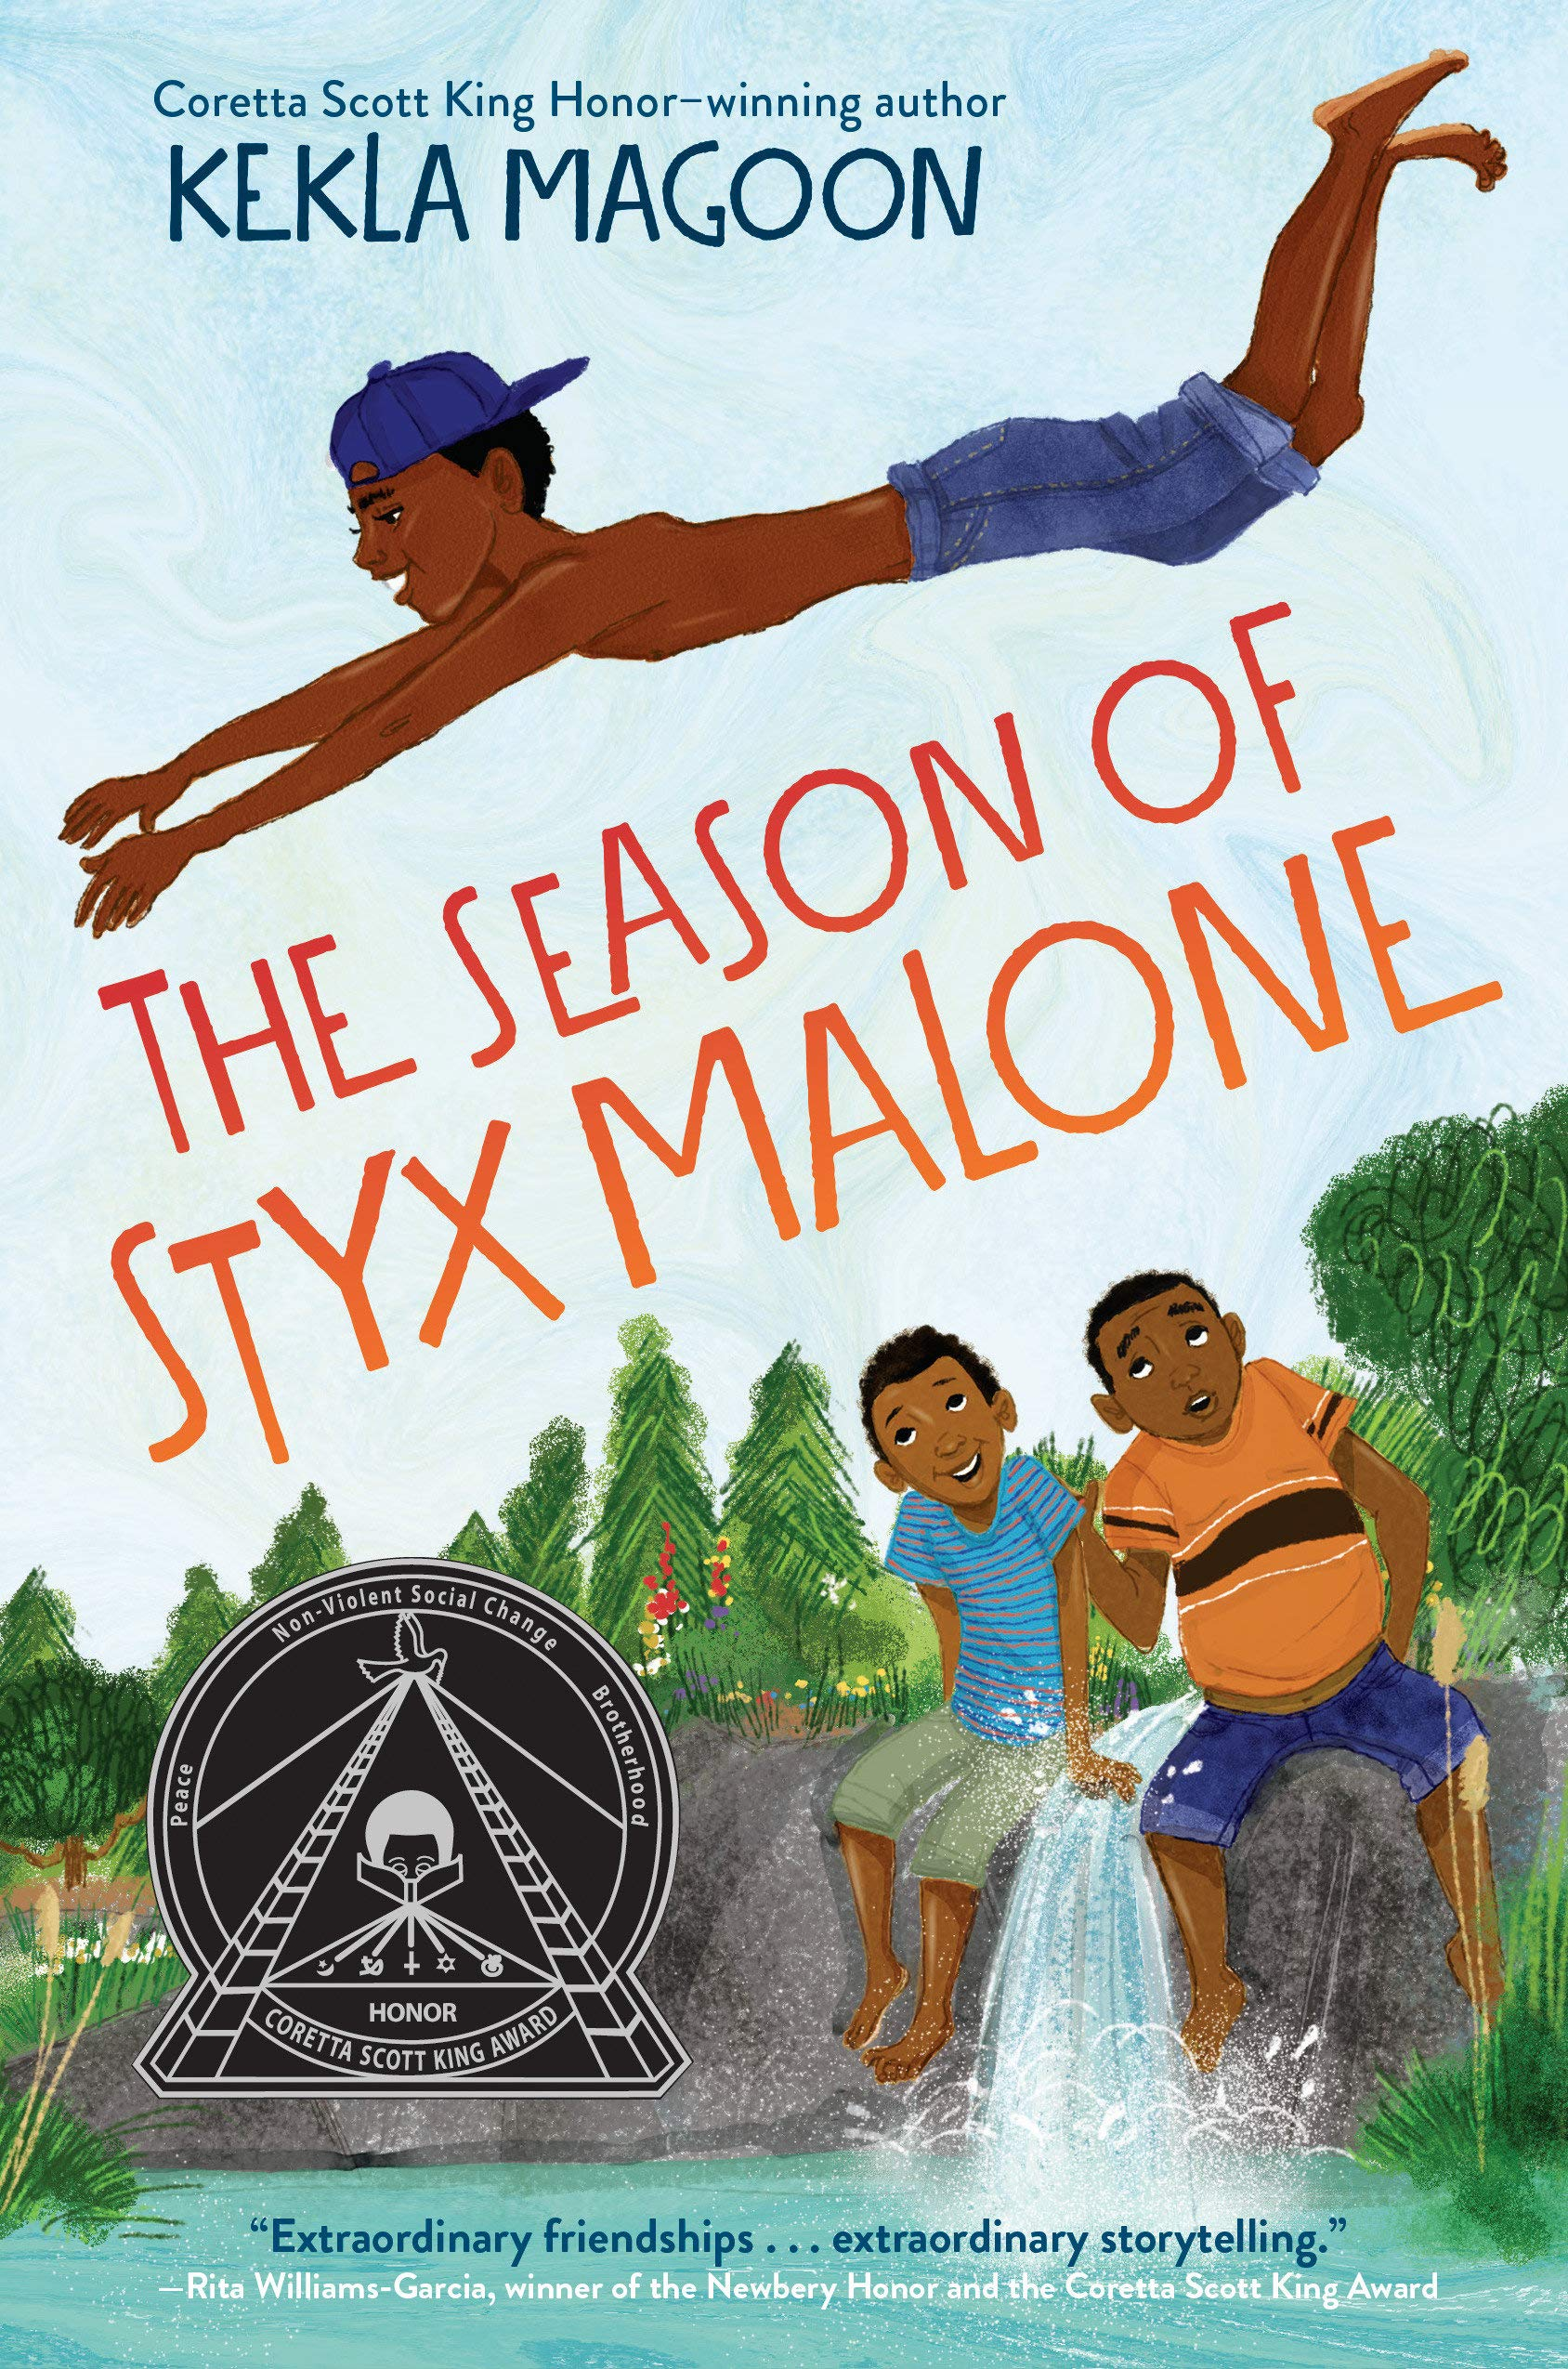 Learning from a Mentor Text: Dialogue in The Season of Styx Malone